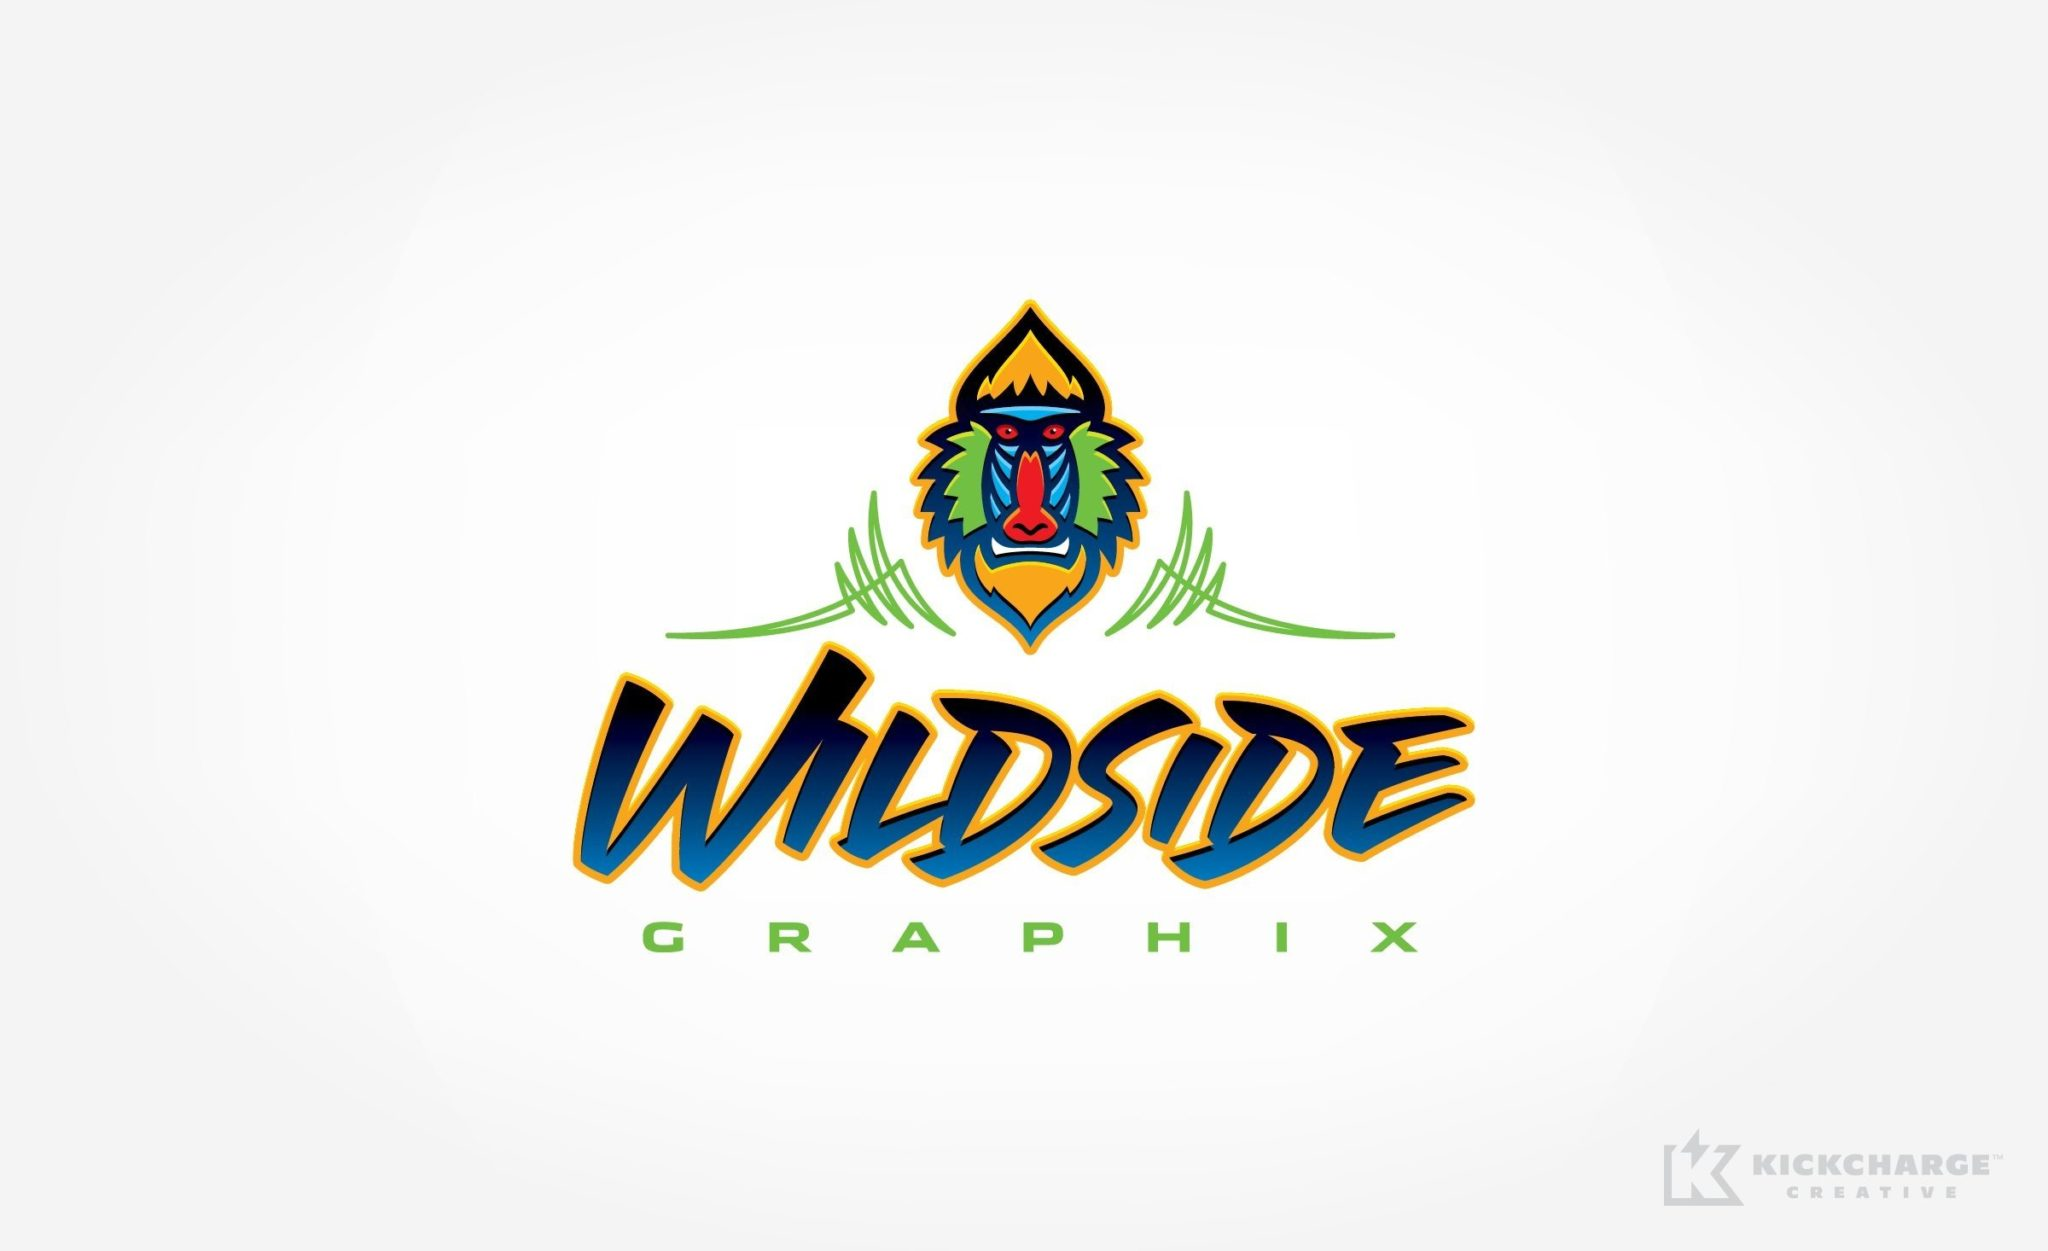 Wildside Graphix